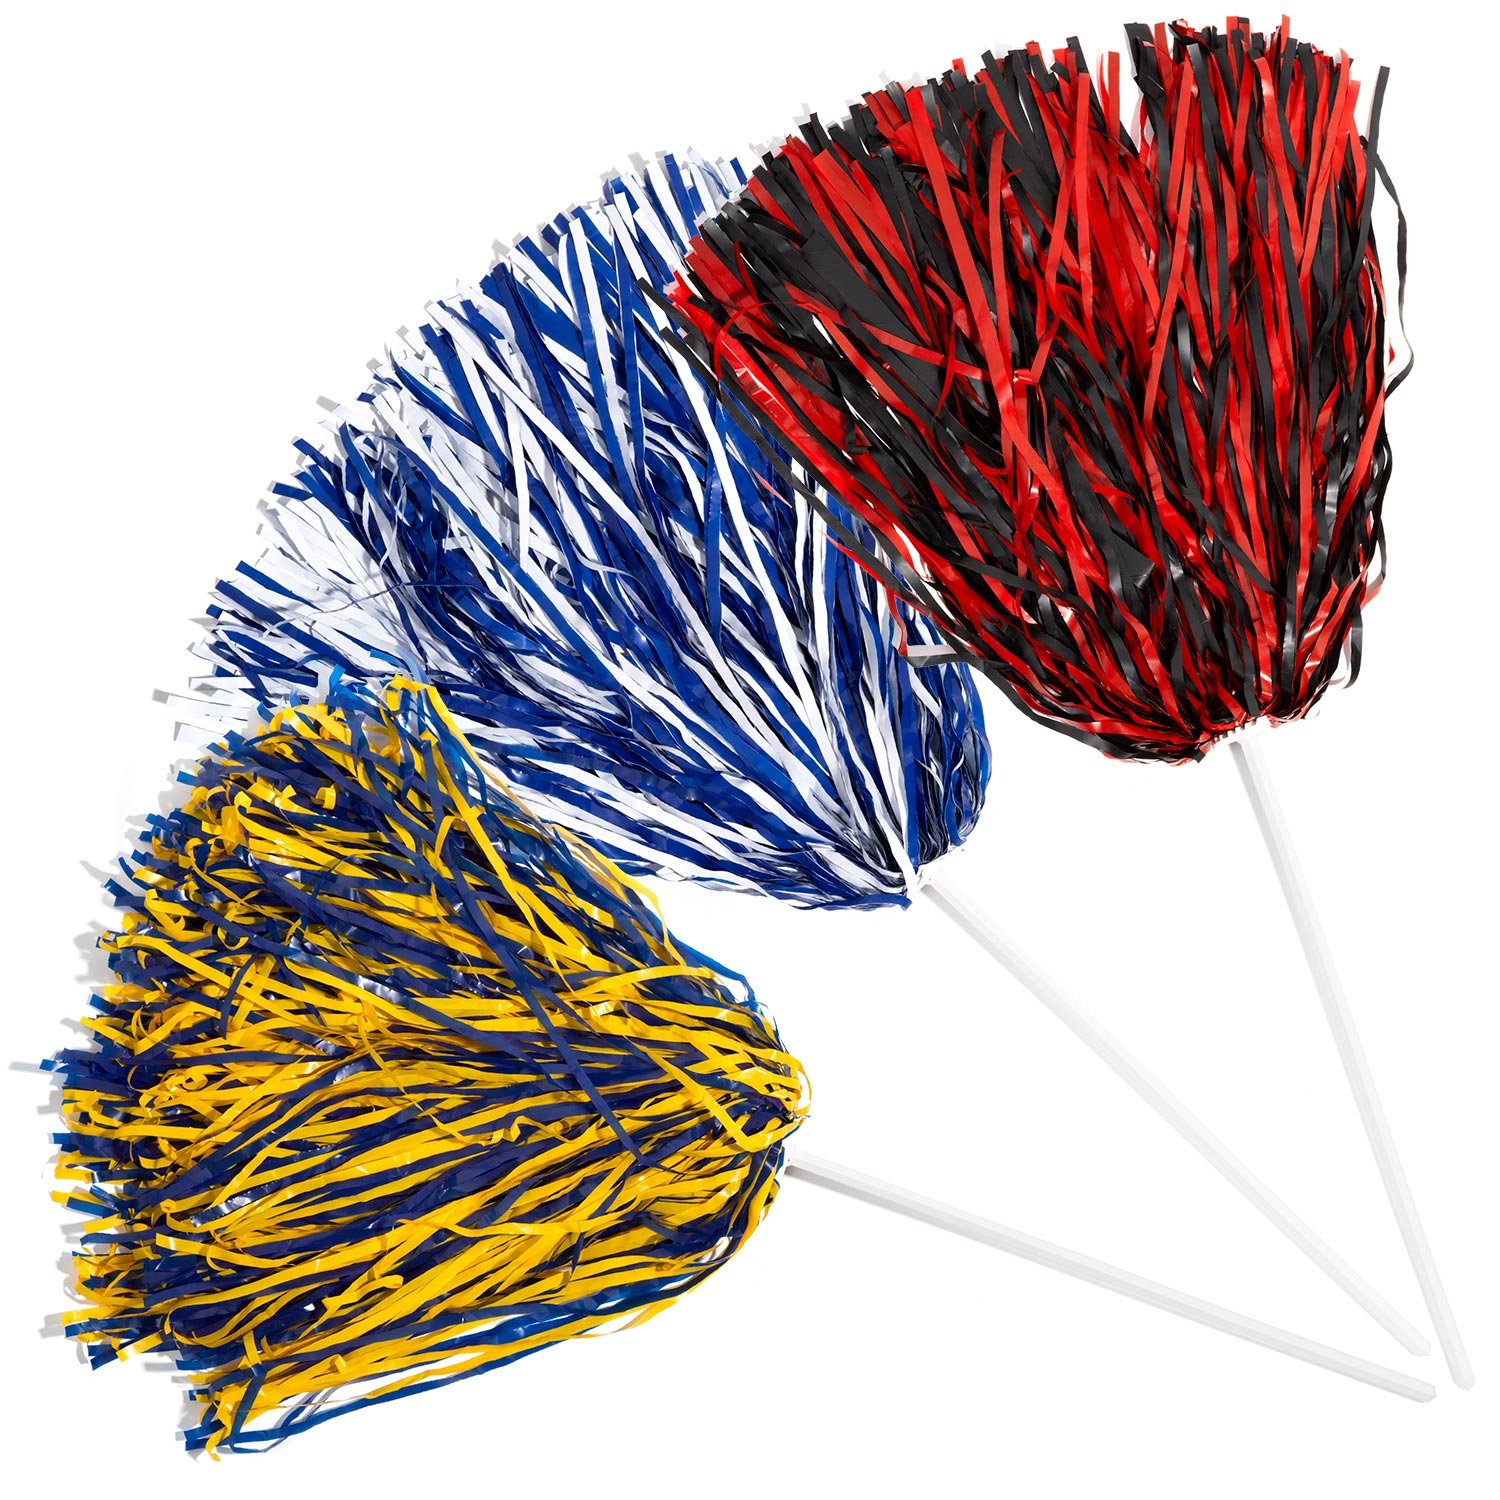 2 Pack 2 Color Football Poms TCDesignerProducts Cheerleader Poms